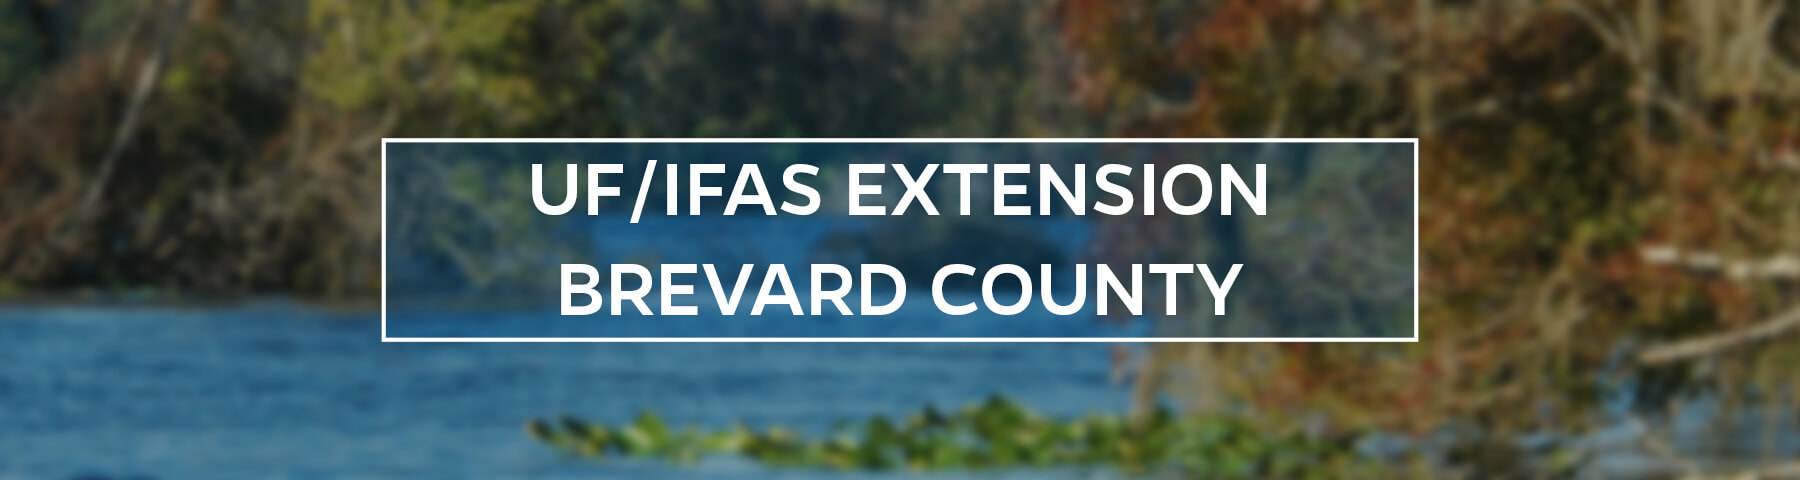 UF/IFAS Extension Brevard County